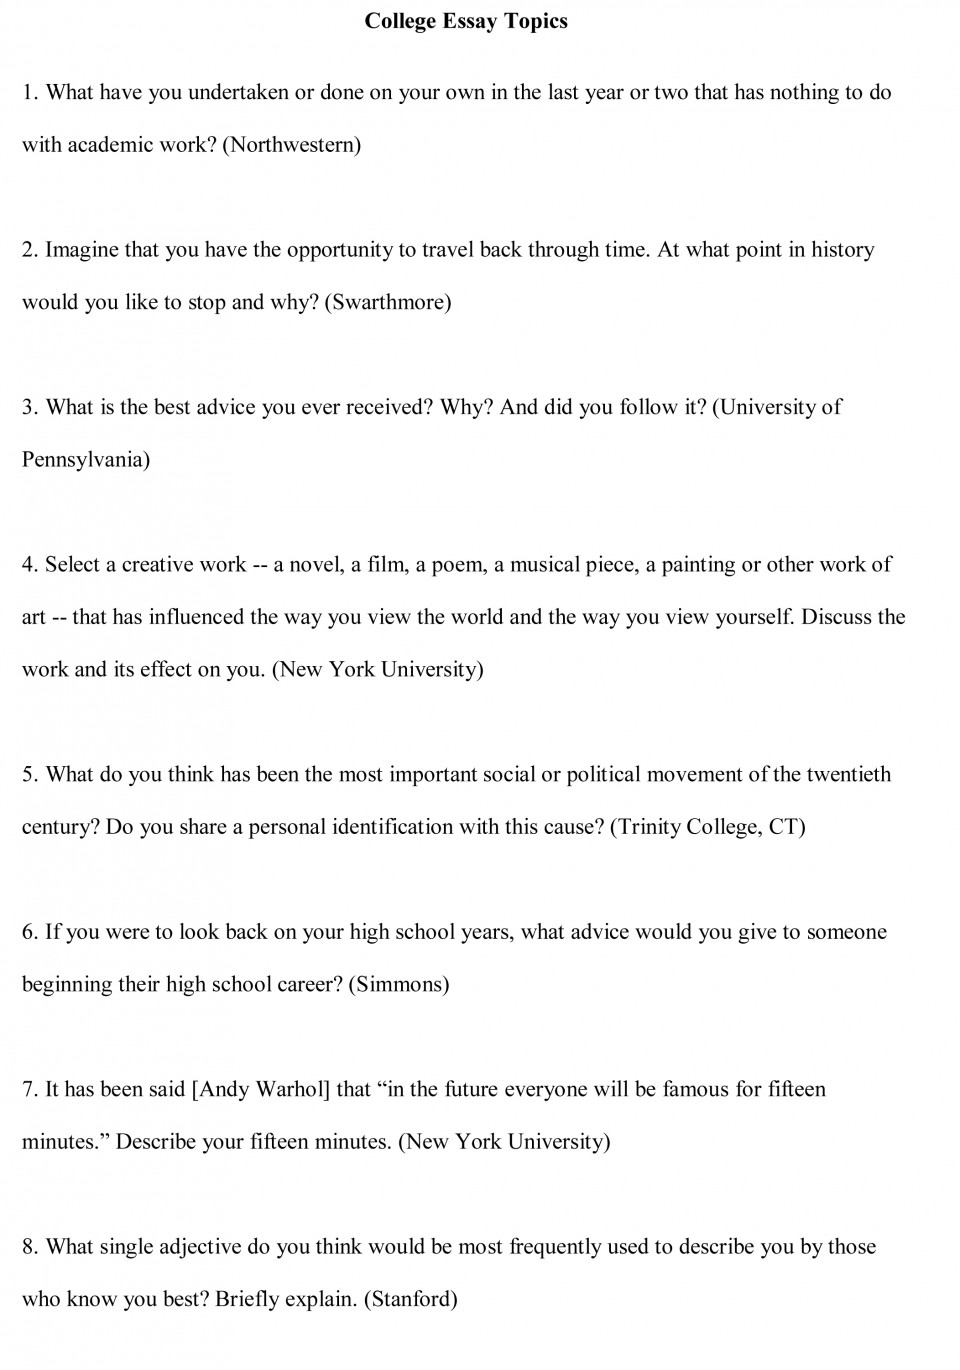 004 College Essay Topics Free Sample1 Good For Essays Top Best Prompts Great 960